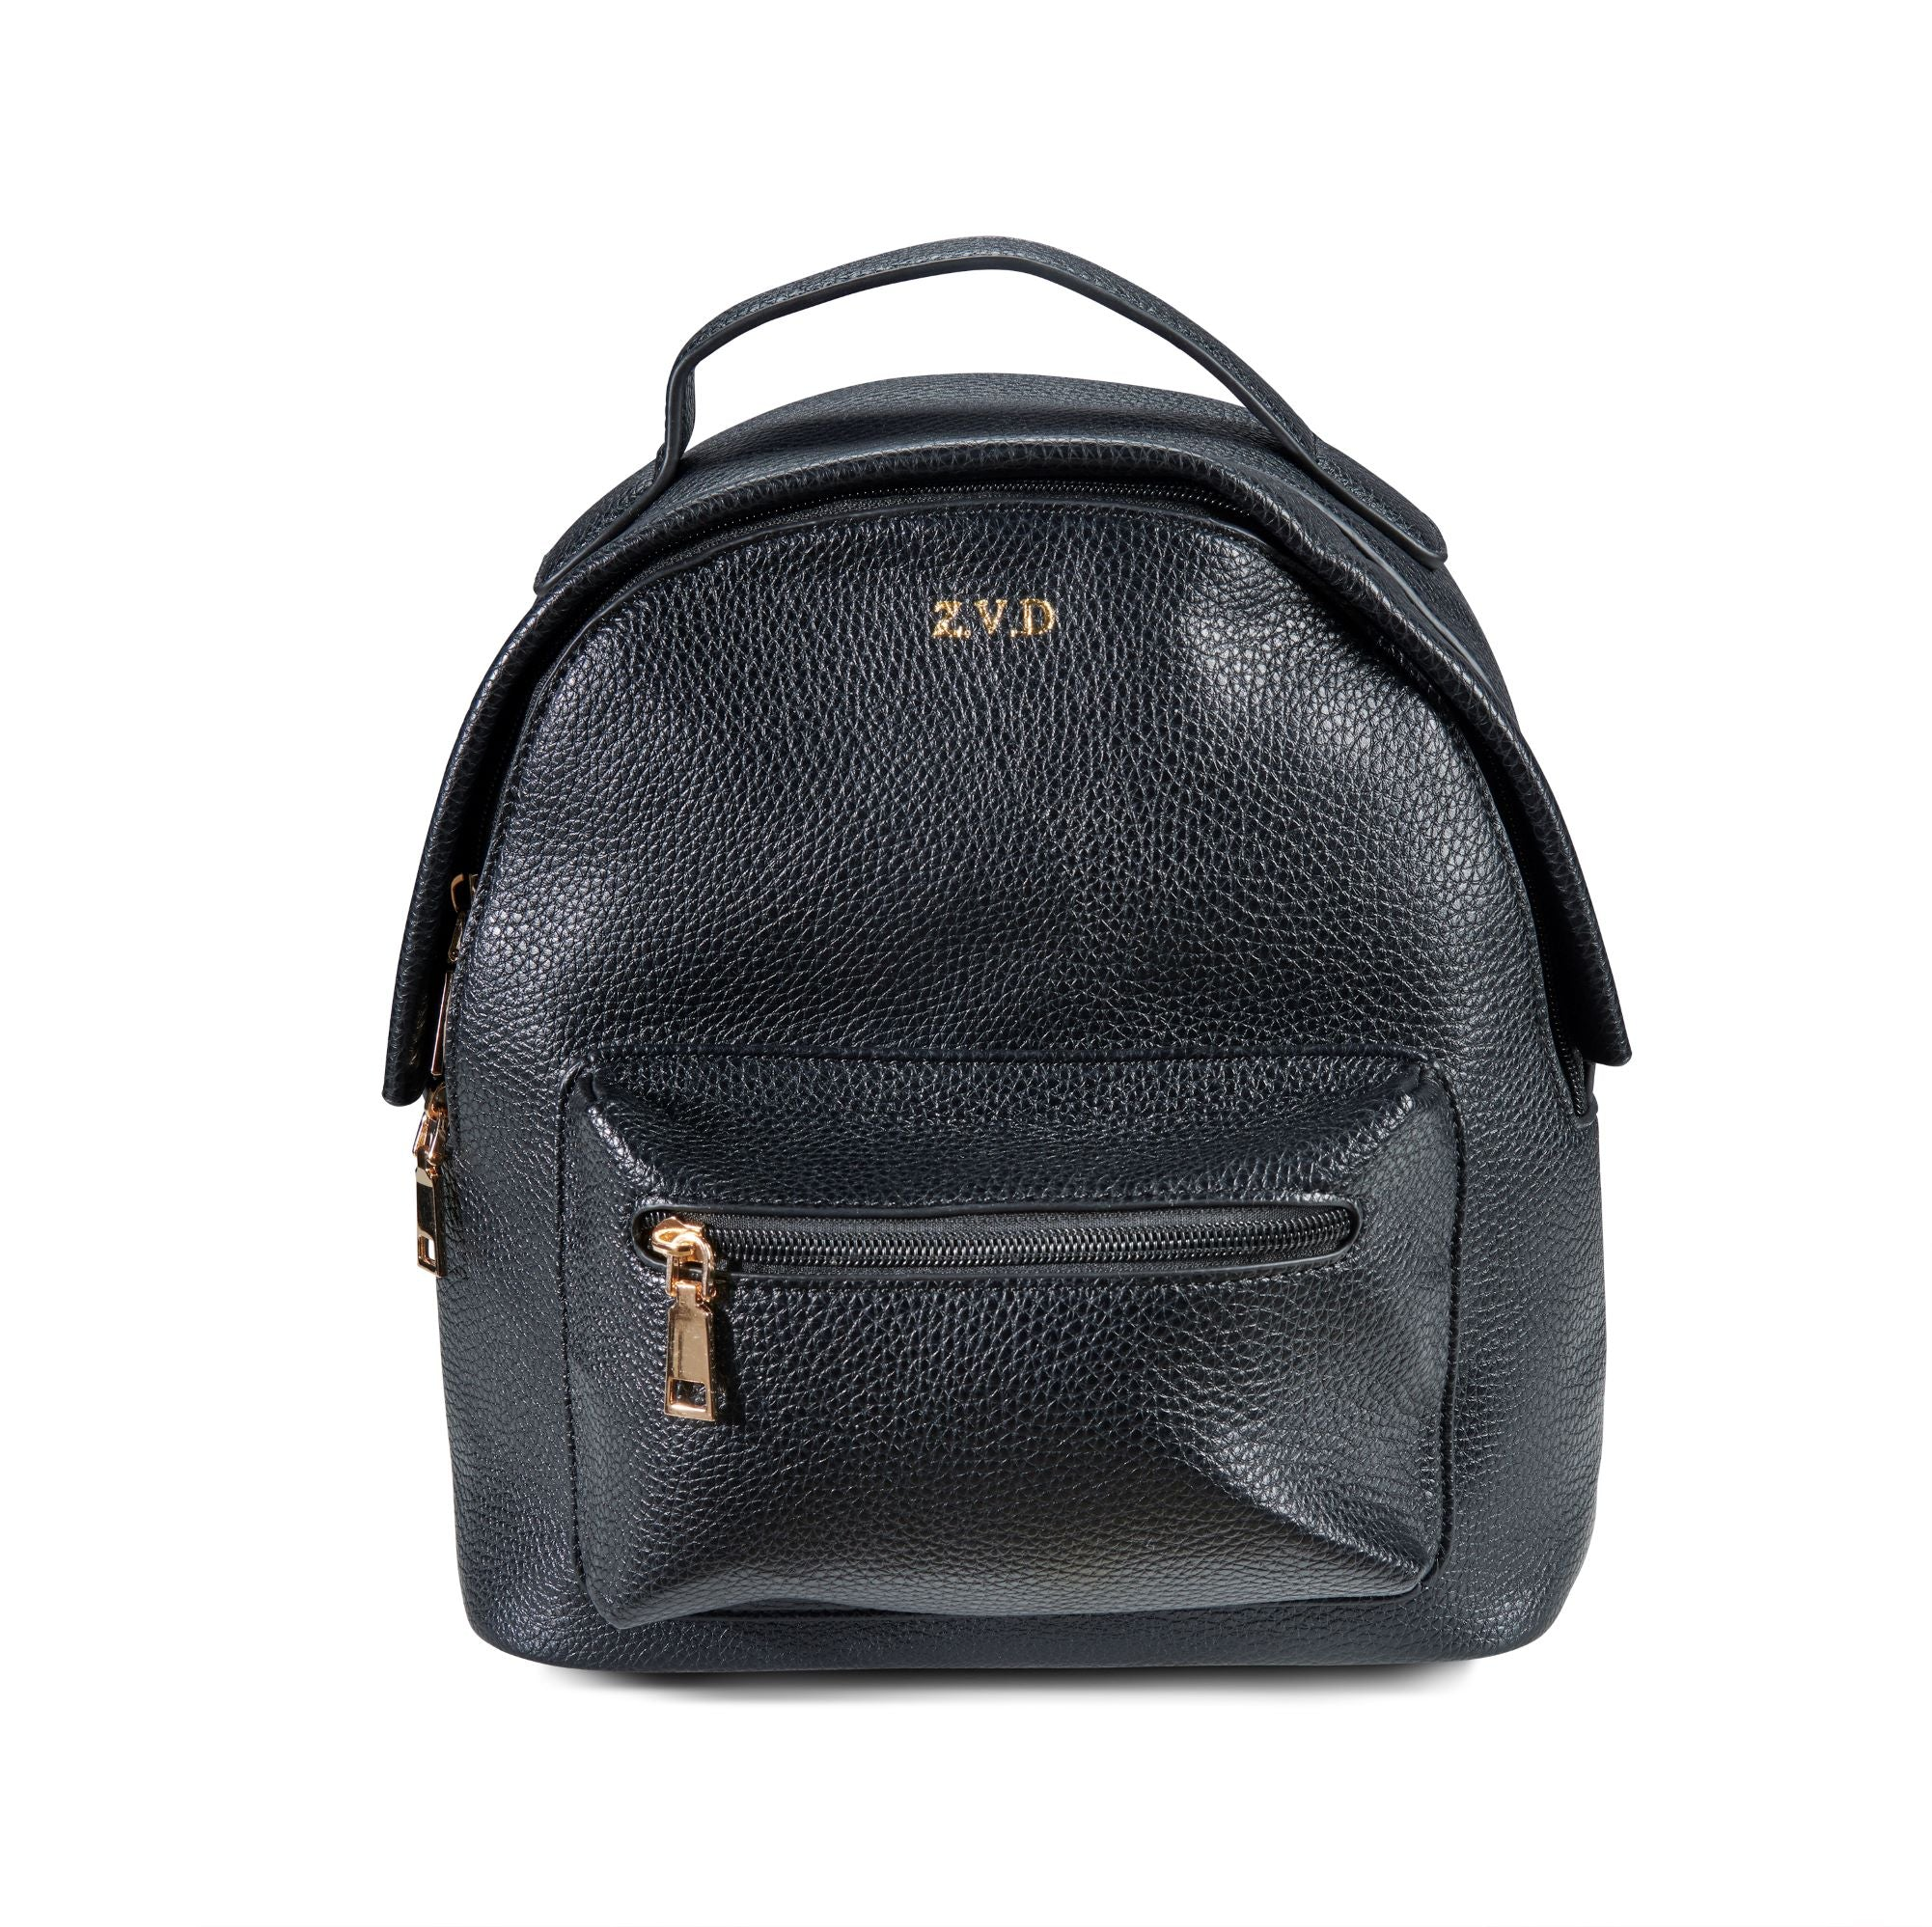 Black Vegan Leather Mini Backpack